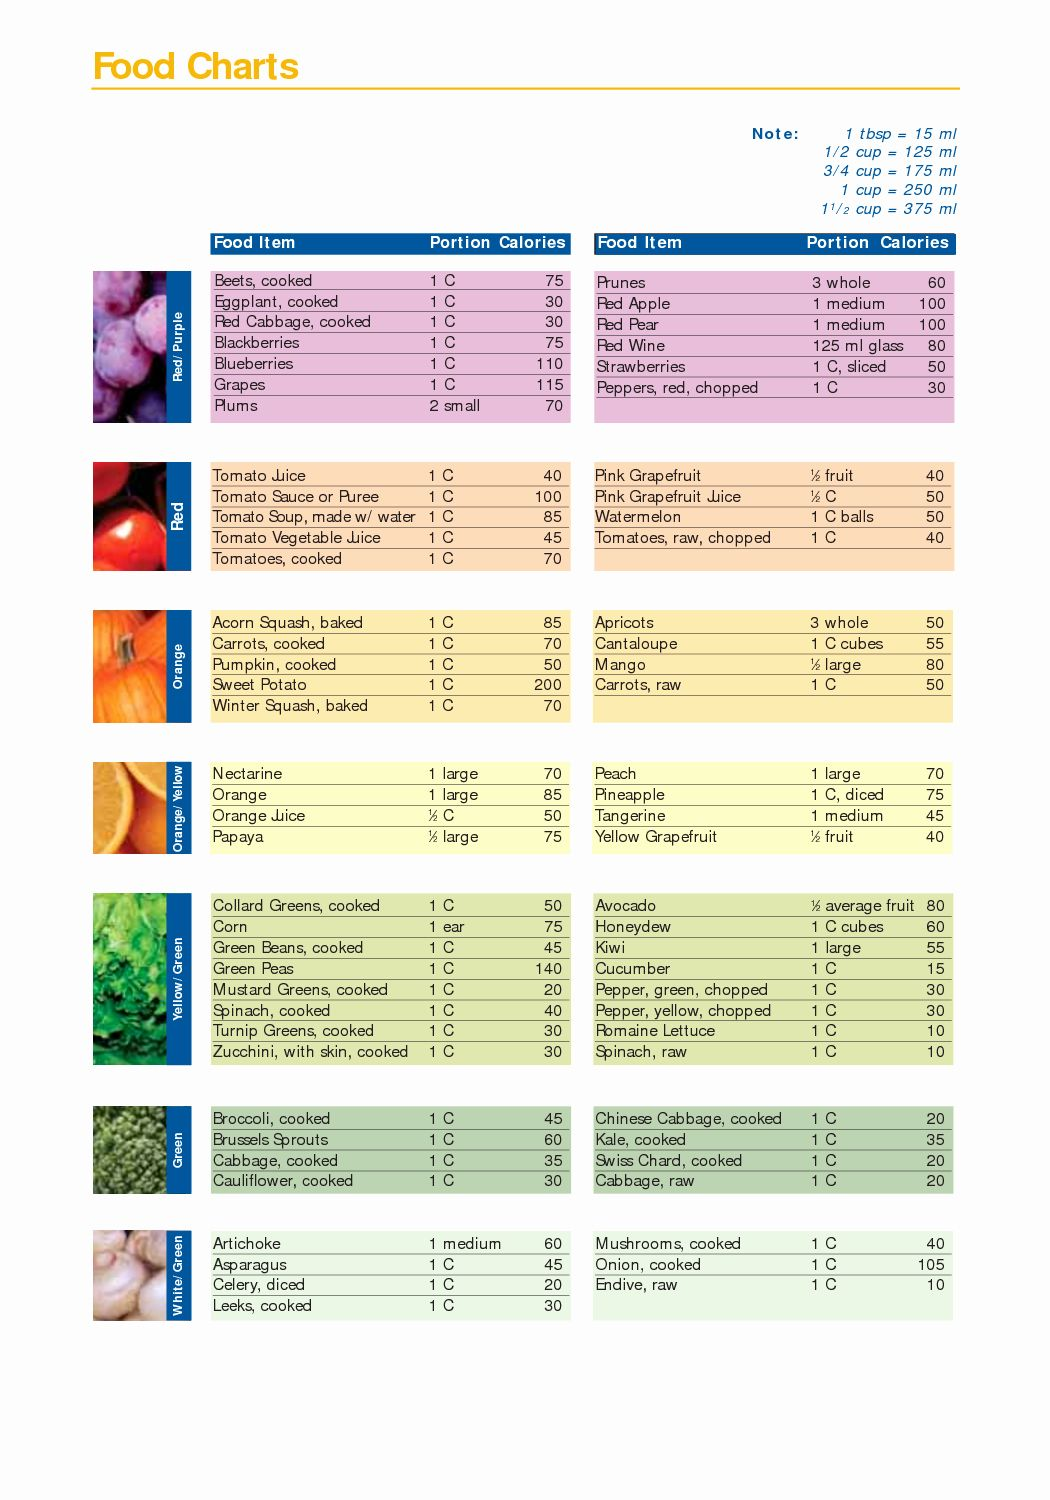 Calories In All Foods Chart Lovely Calories Food Chart Pdf Food Macro Chart Pdf Food In 2020 Food Calorie Chart Calorie Chart Food Charts